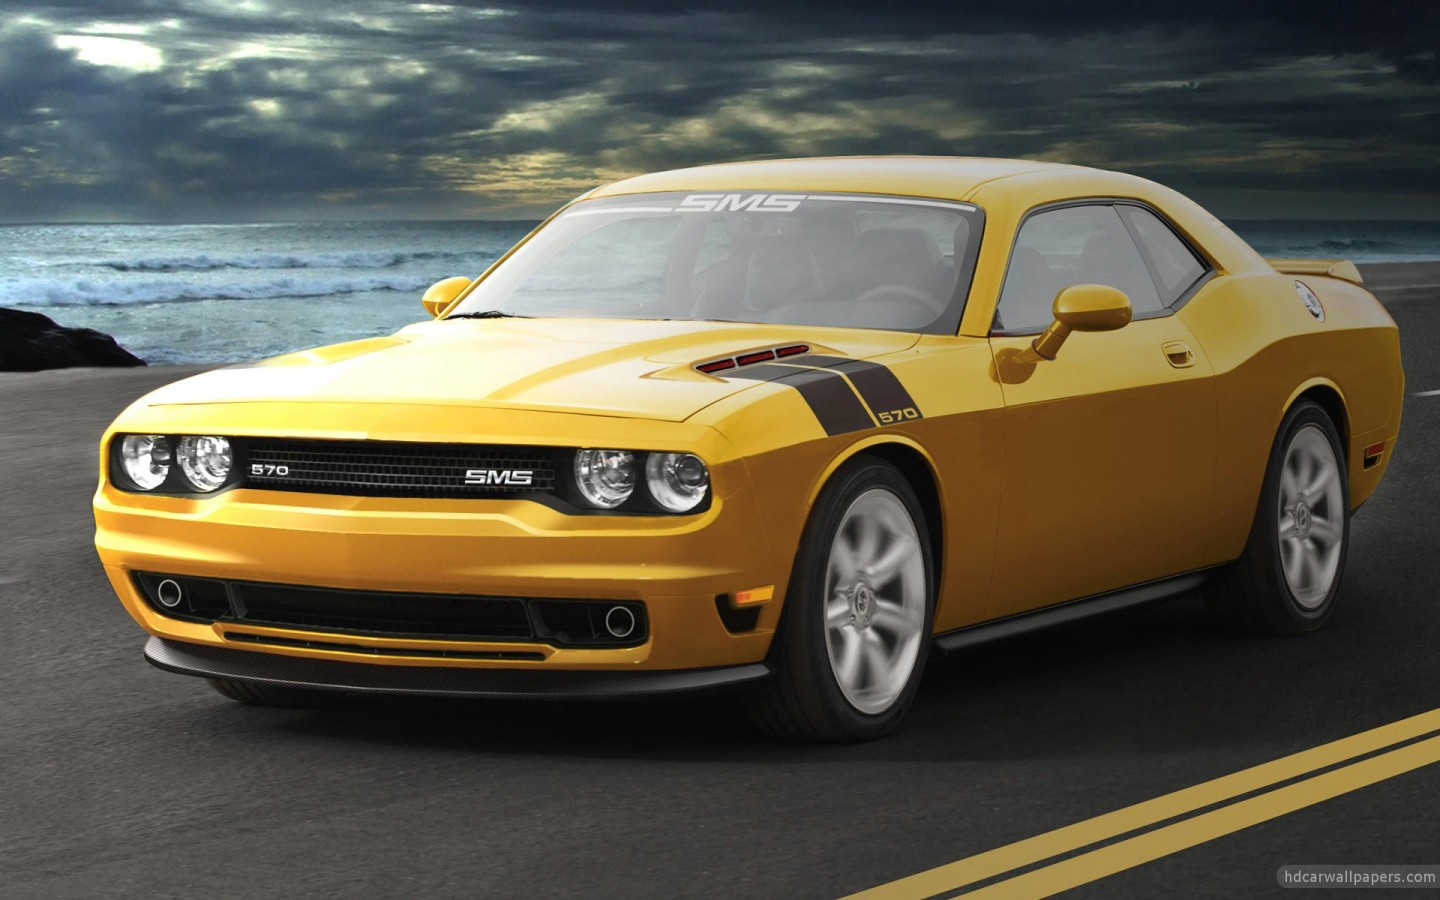 Car Hd Wallpaper For Iphone 6 Sms Dodge Challenger Wallpaper Hd Car Wallpapers Id 2043